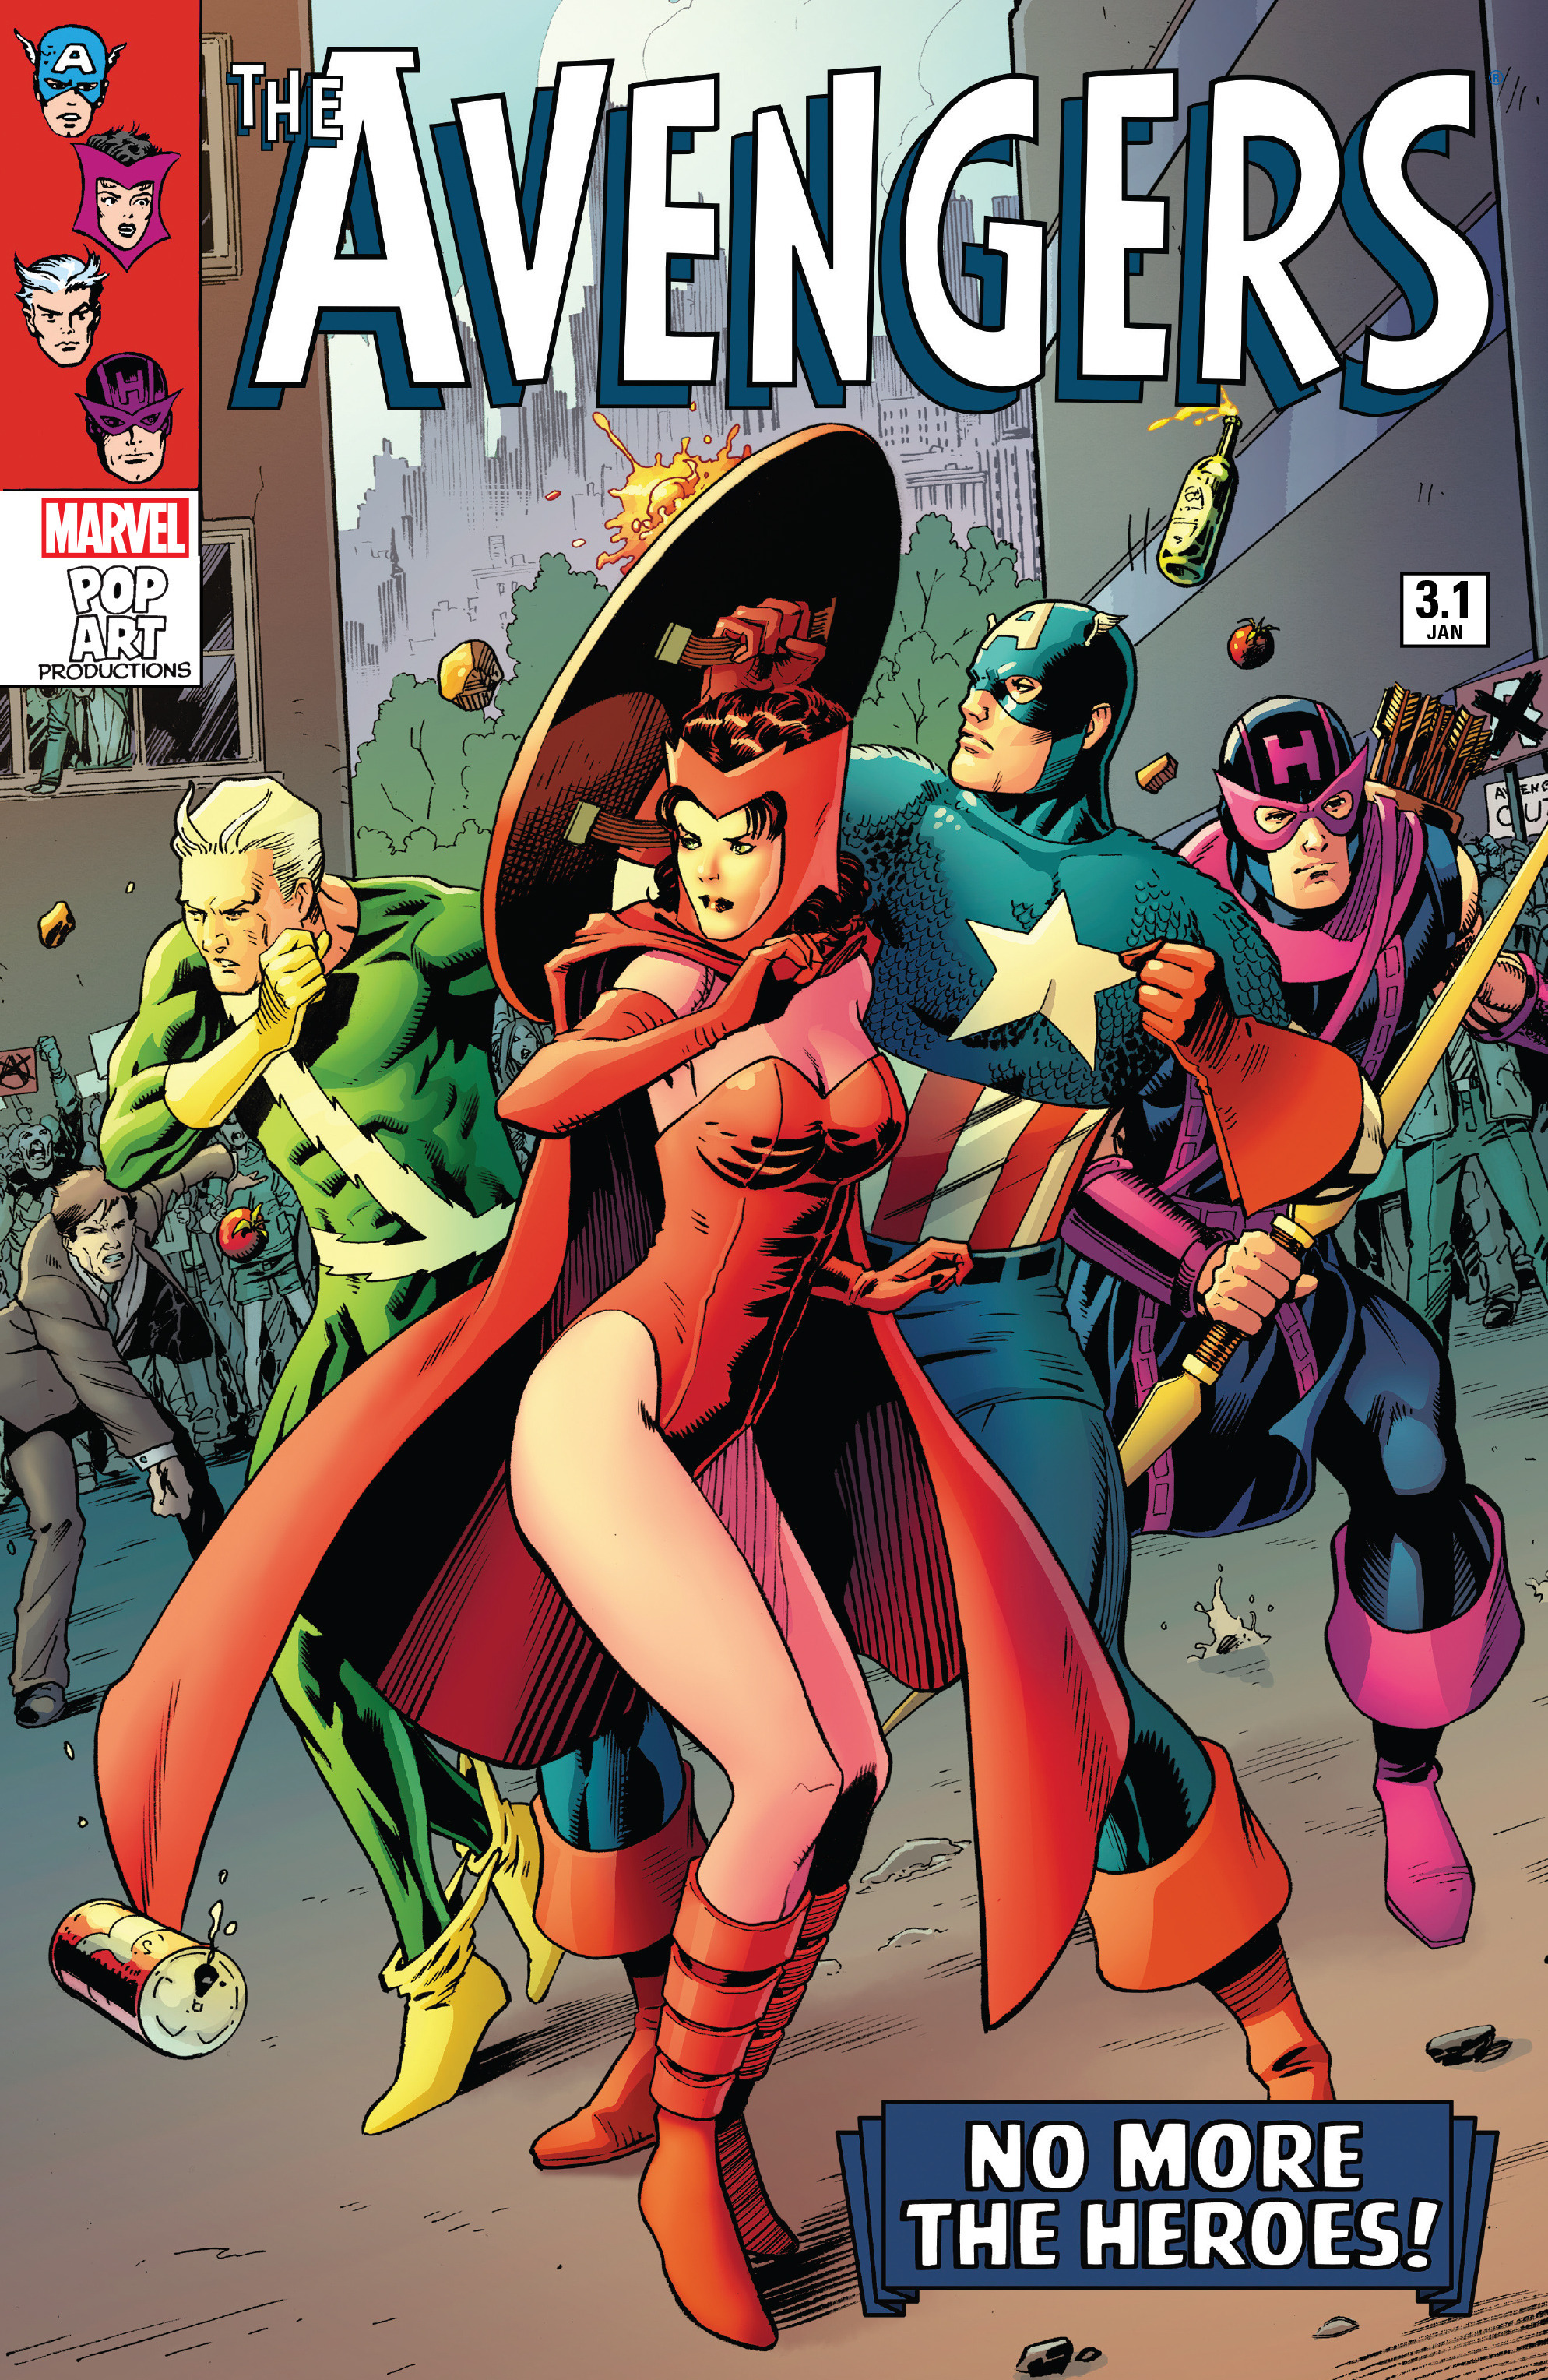 Read online Avengers (2016) comic -  Issue #3.1 - 1